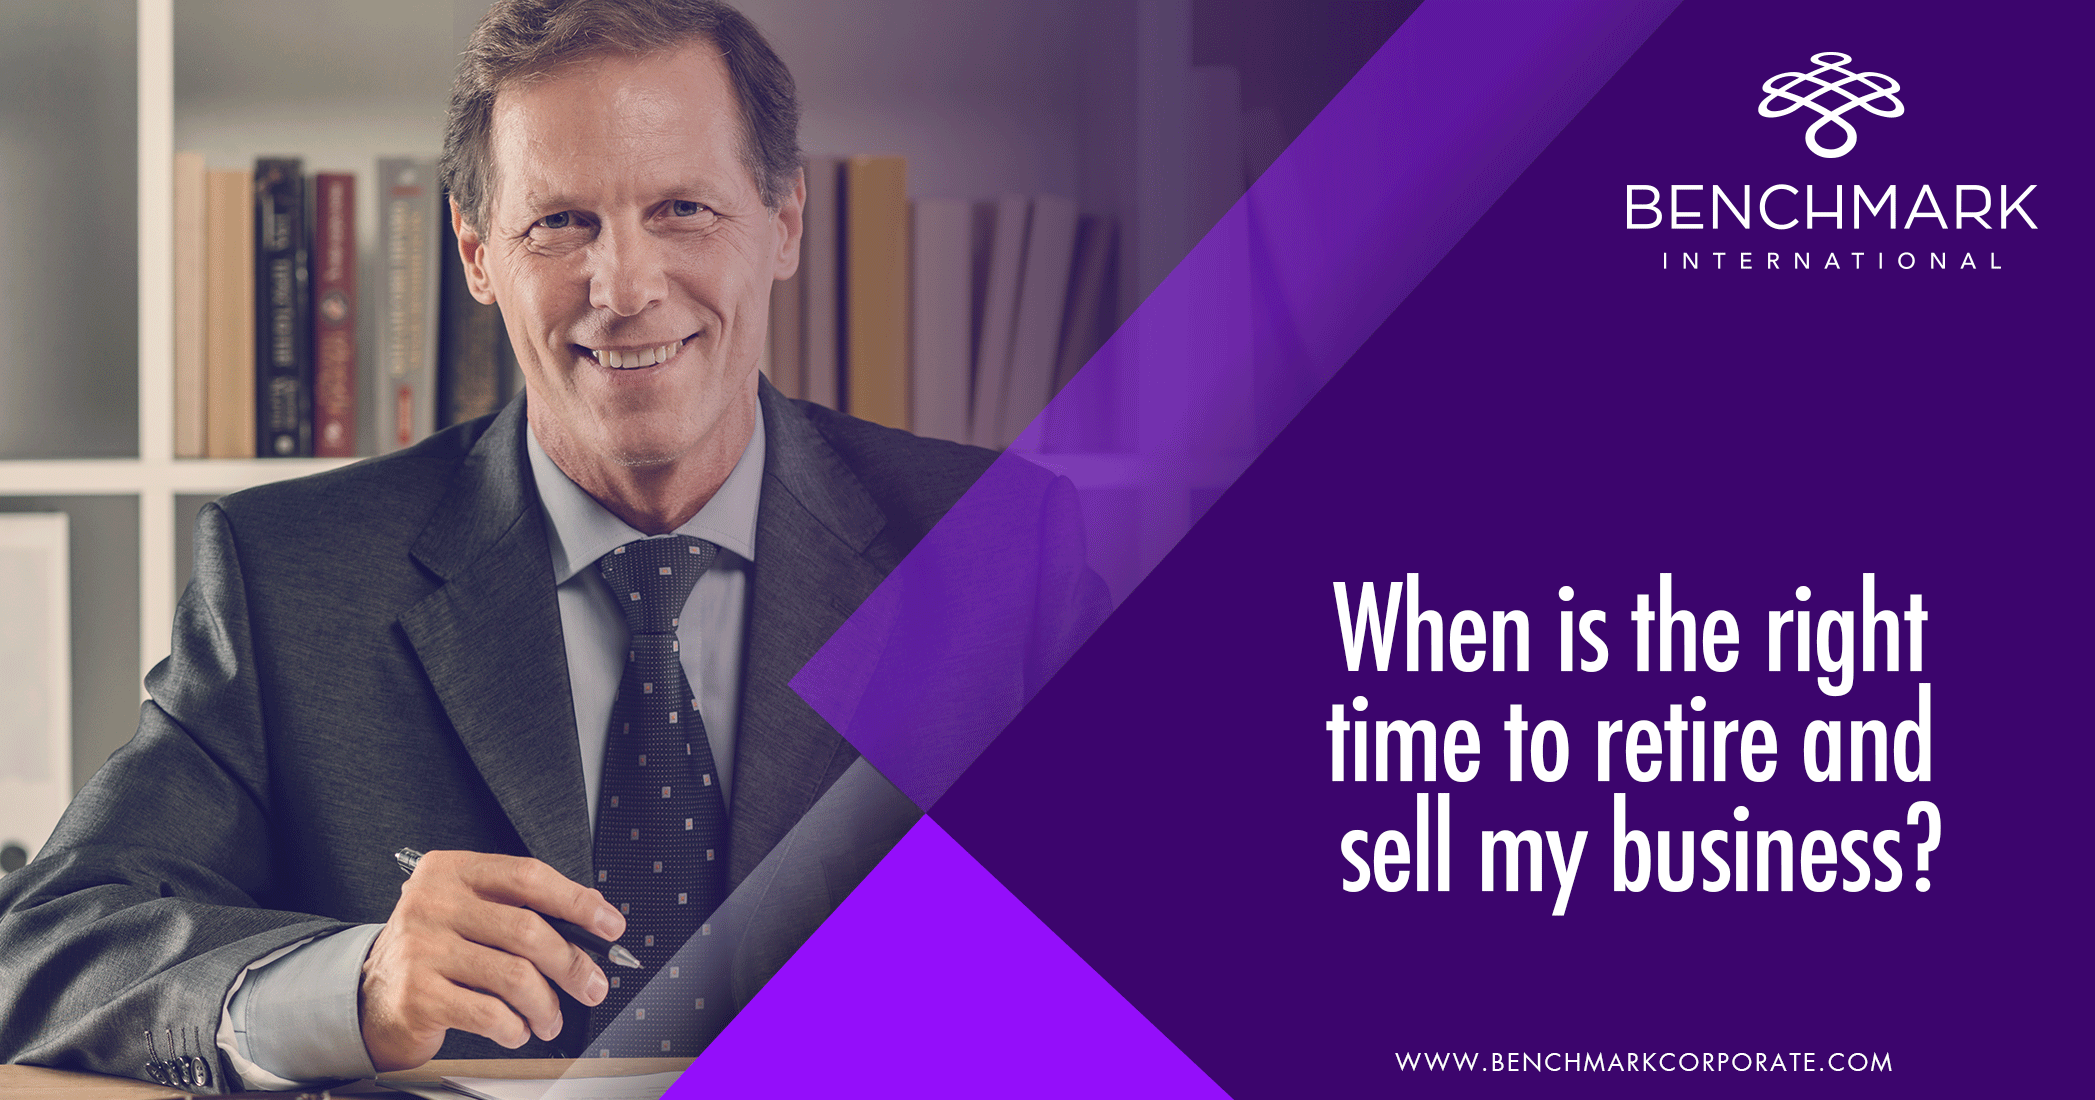 When Is The Right Time To Retire And Sell My Business?